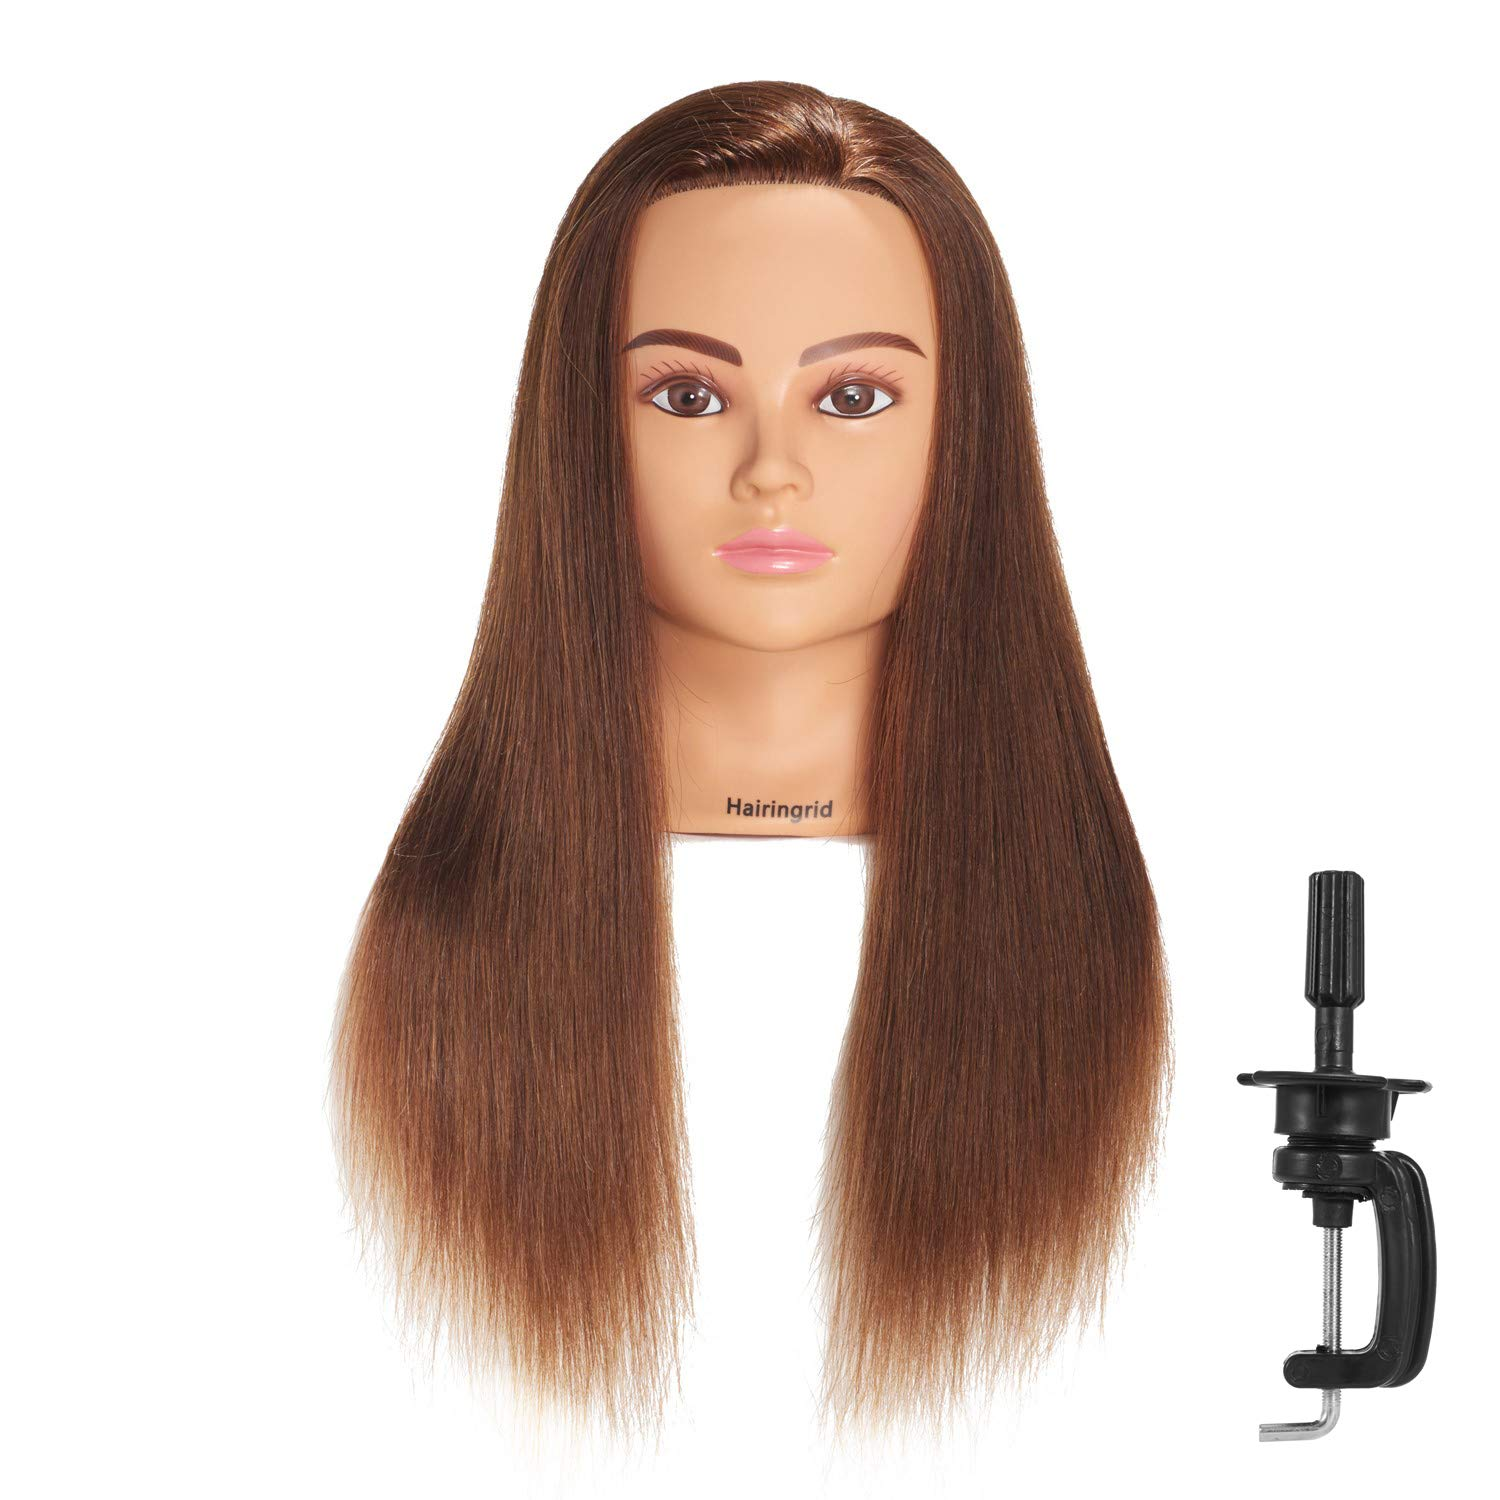 Hairingrid Mannequin Head 24''-26''100% Human Hair Hairdresser Cosmetology Mannequin Manikin Training Head Hair and Free Clamp Holder (R71906LB0418H) by HAIRINGRID